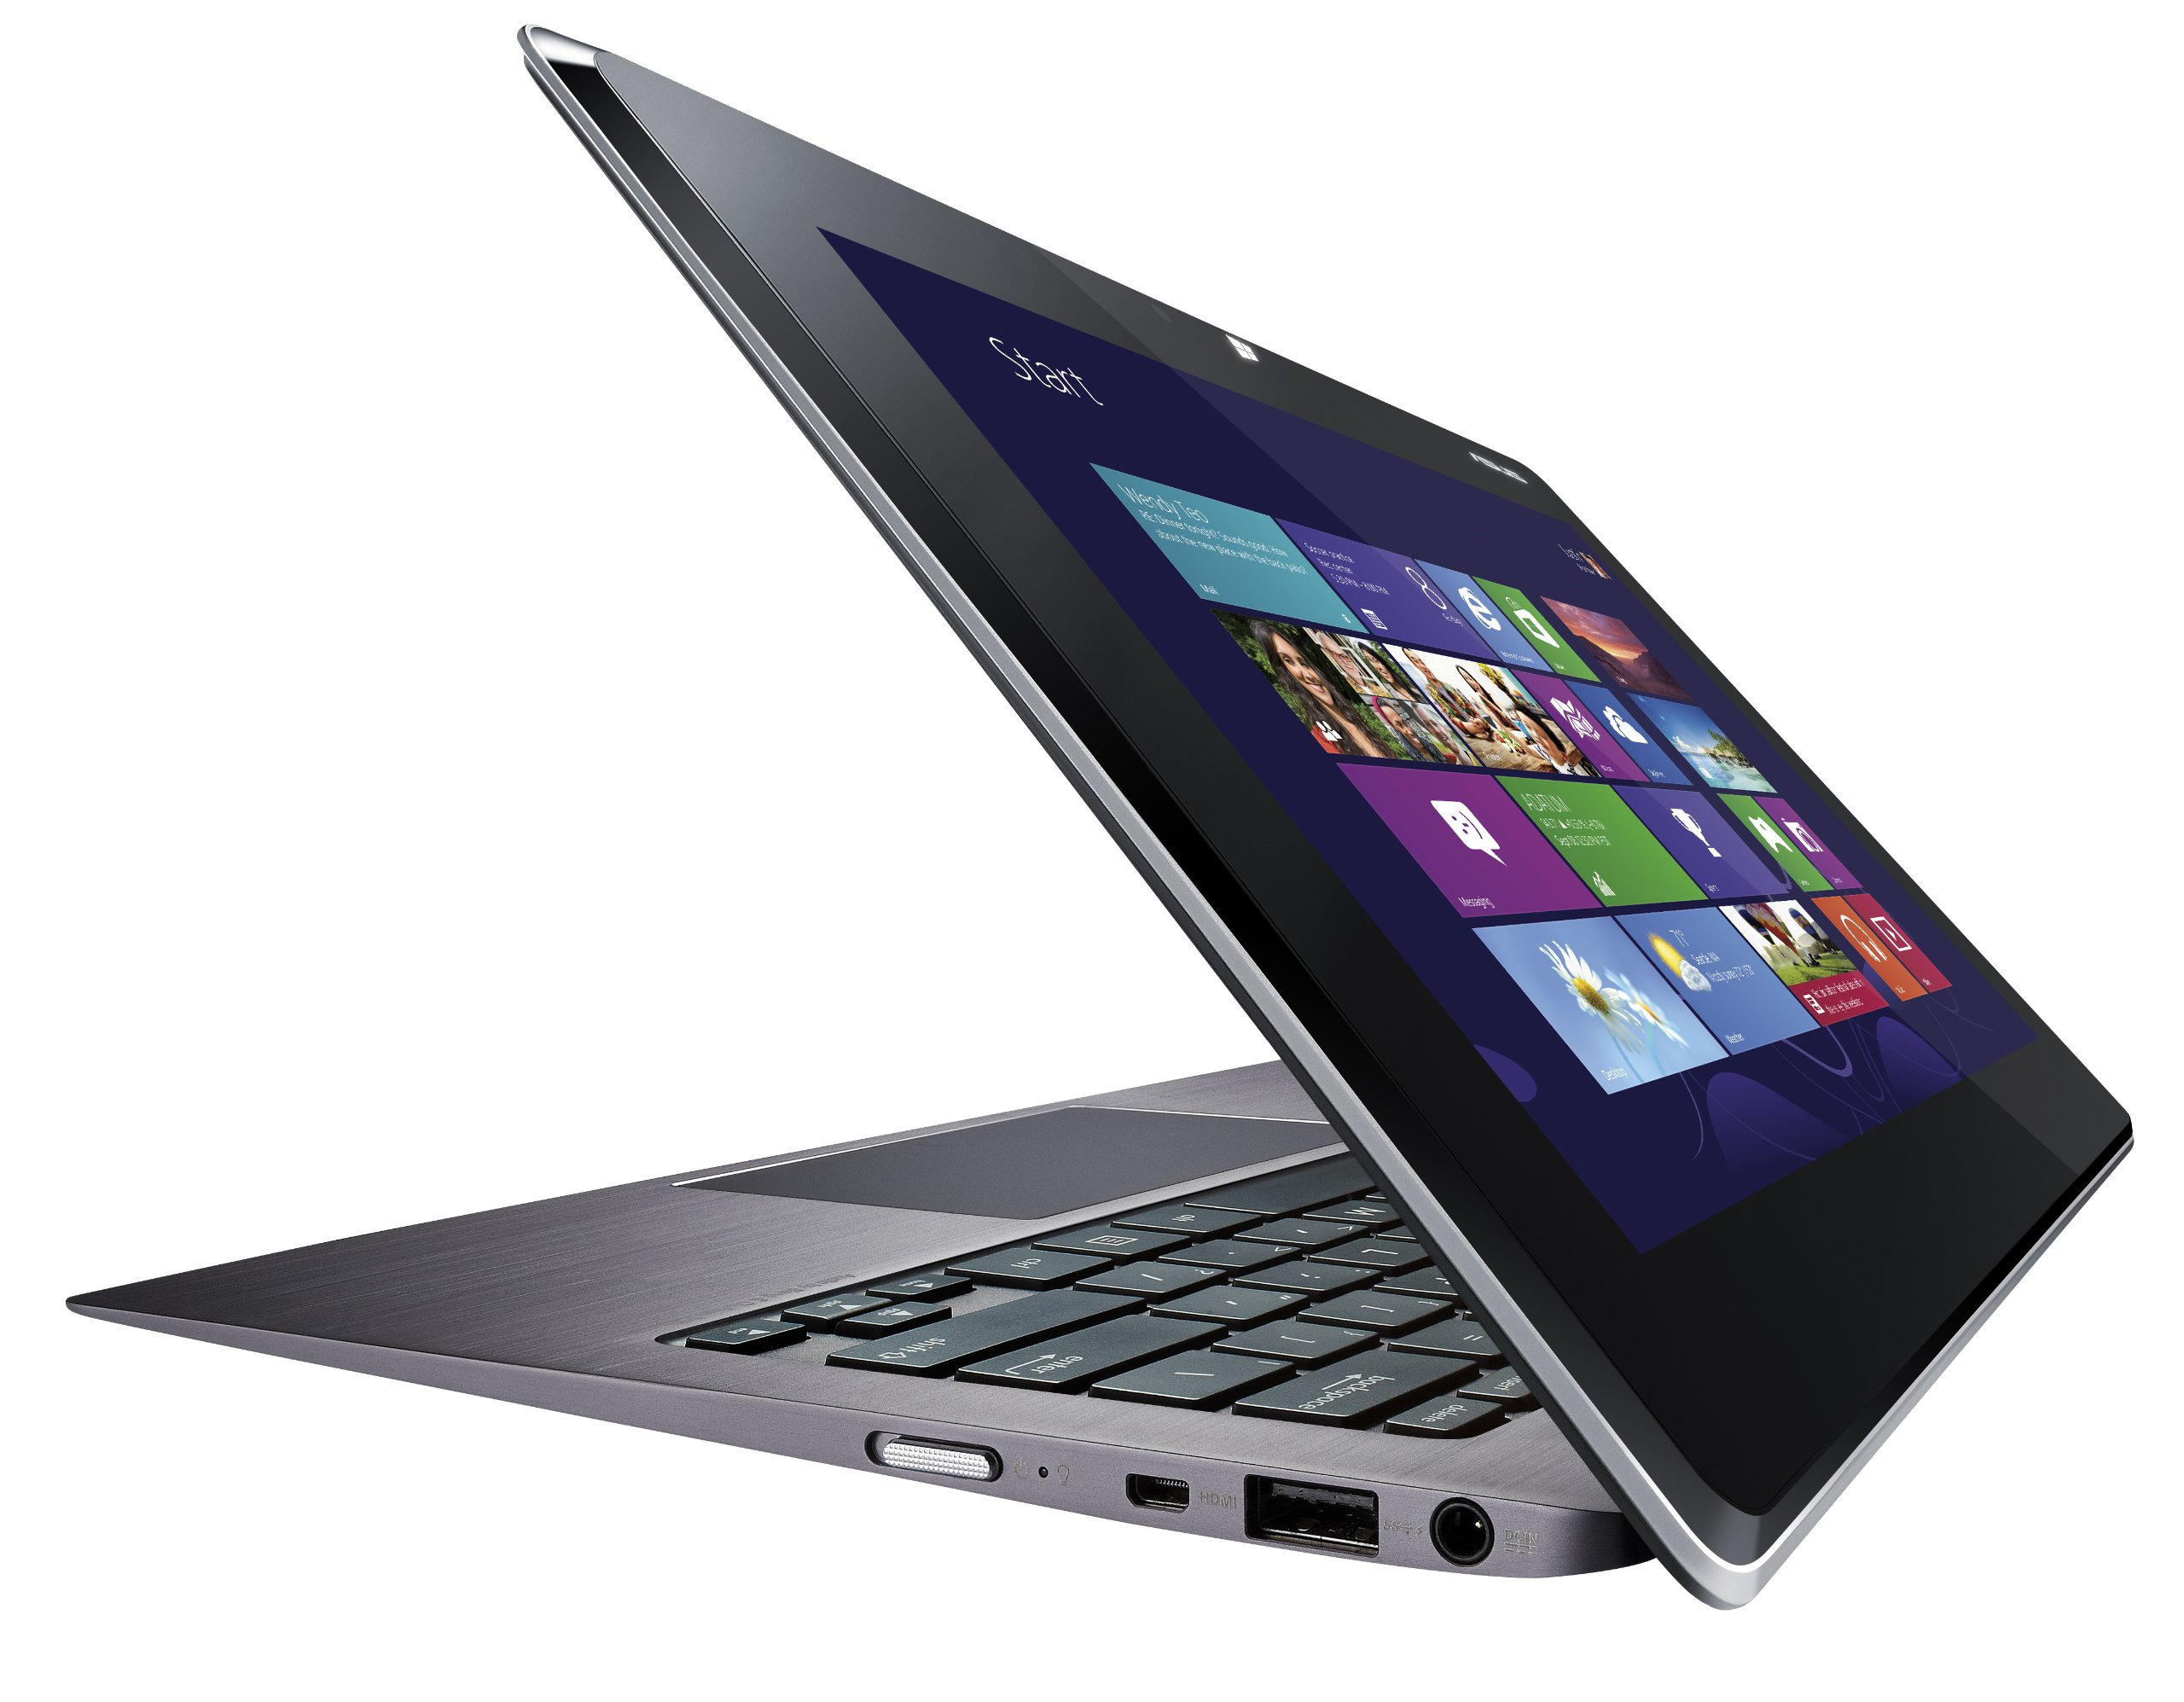 Asus Taichi 21 Dh71 11 Inch Convertible 2in1 Old Version Buy